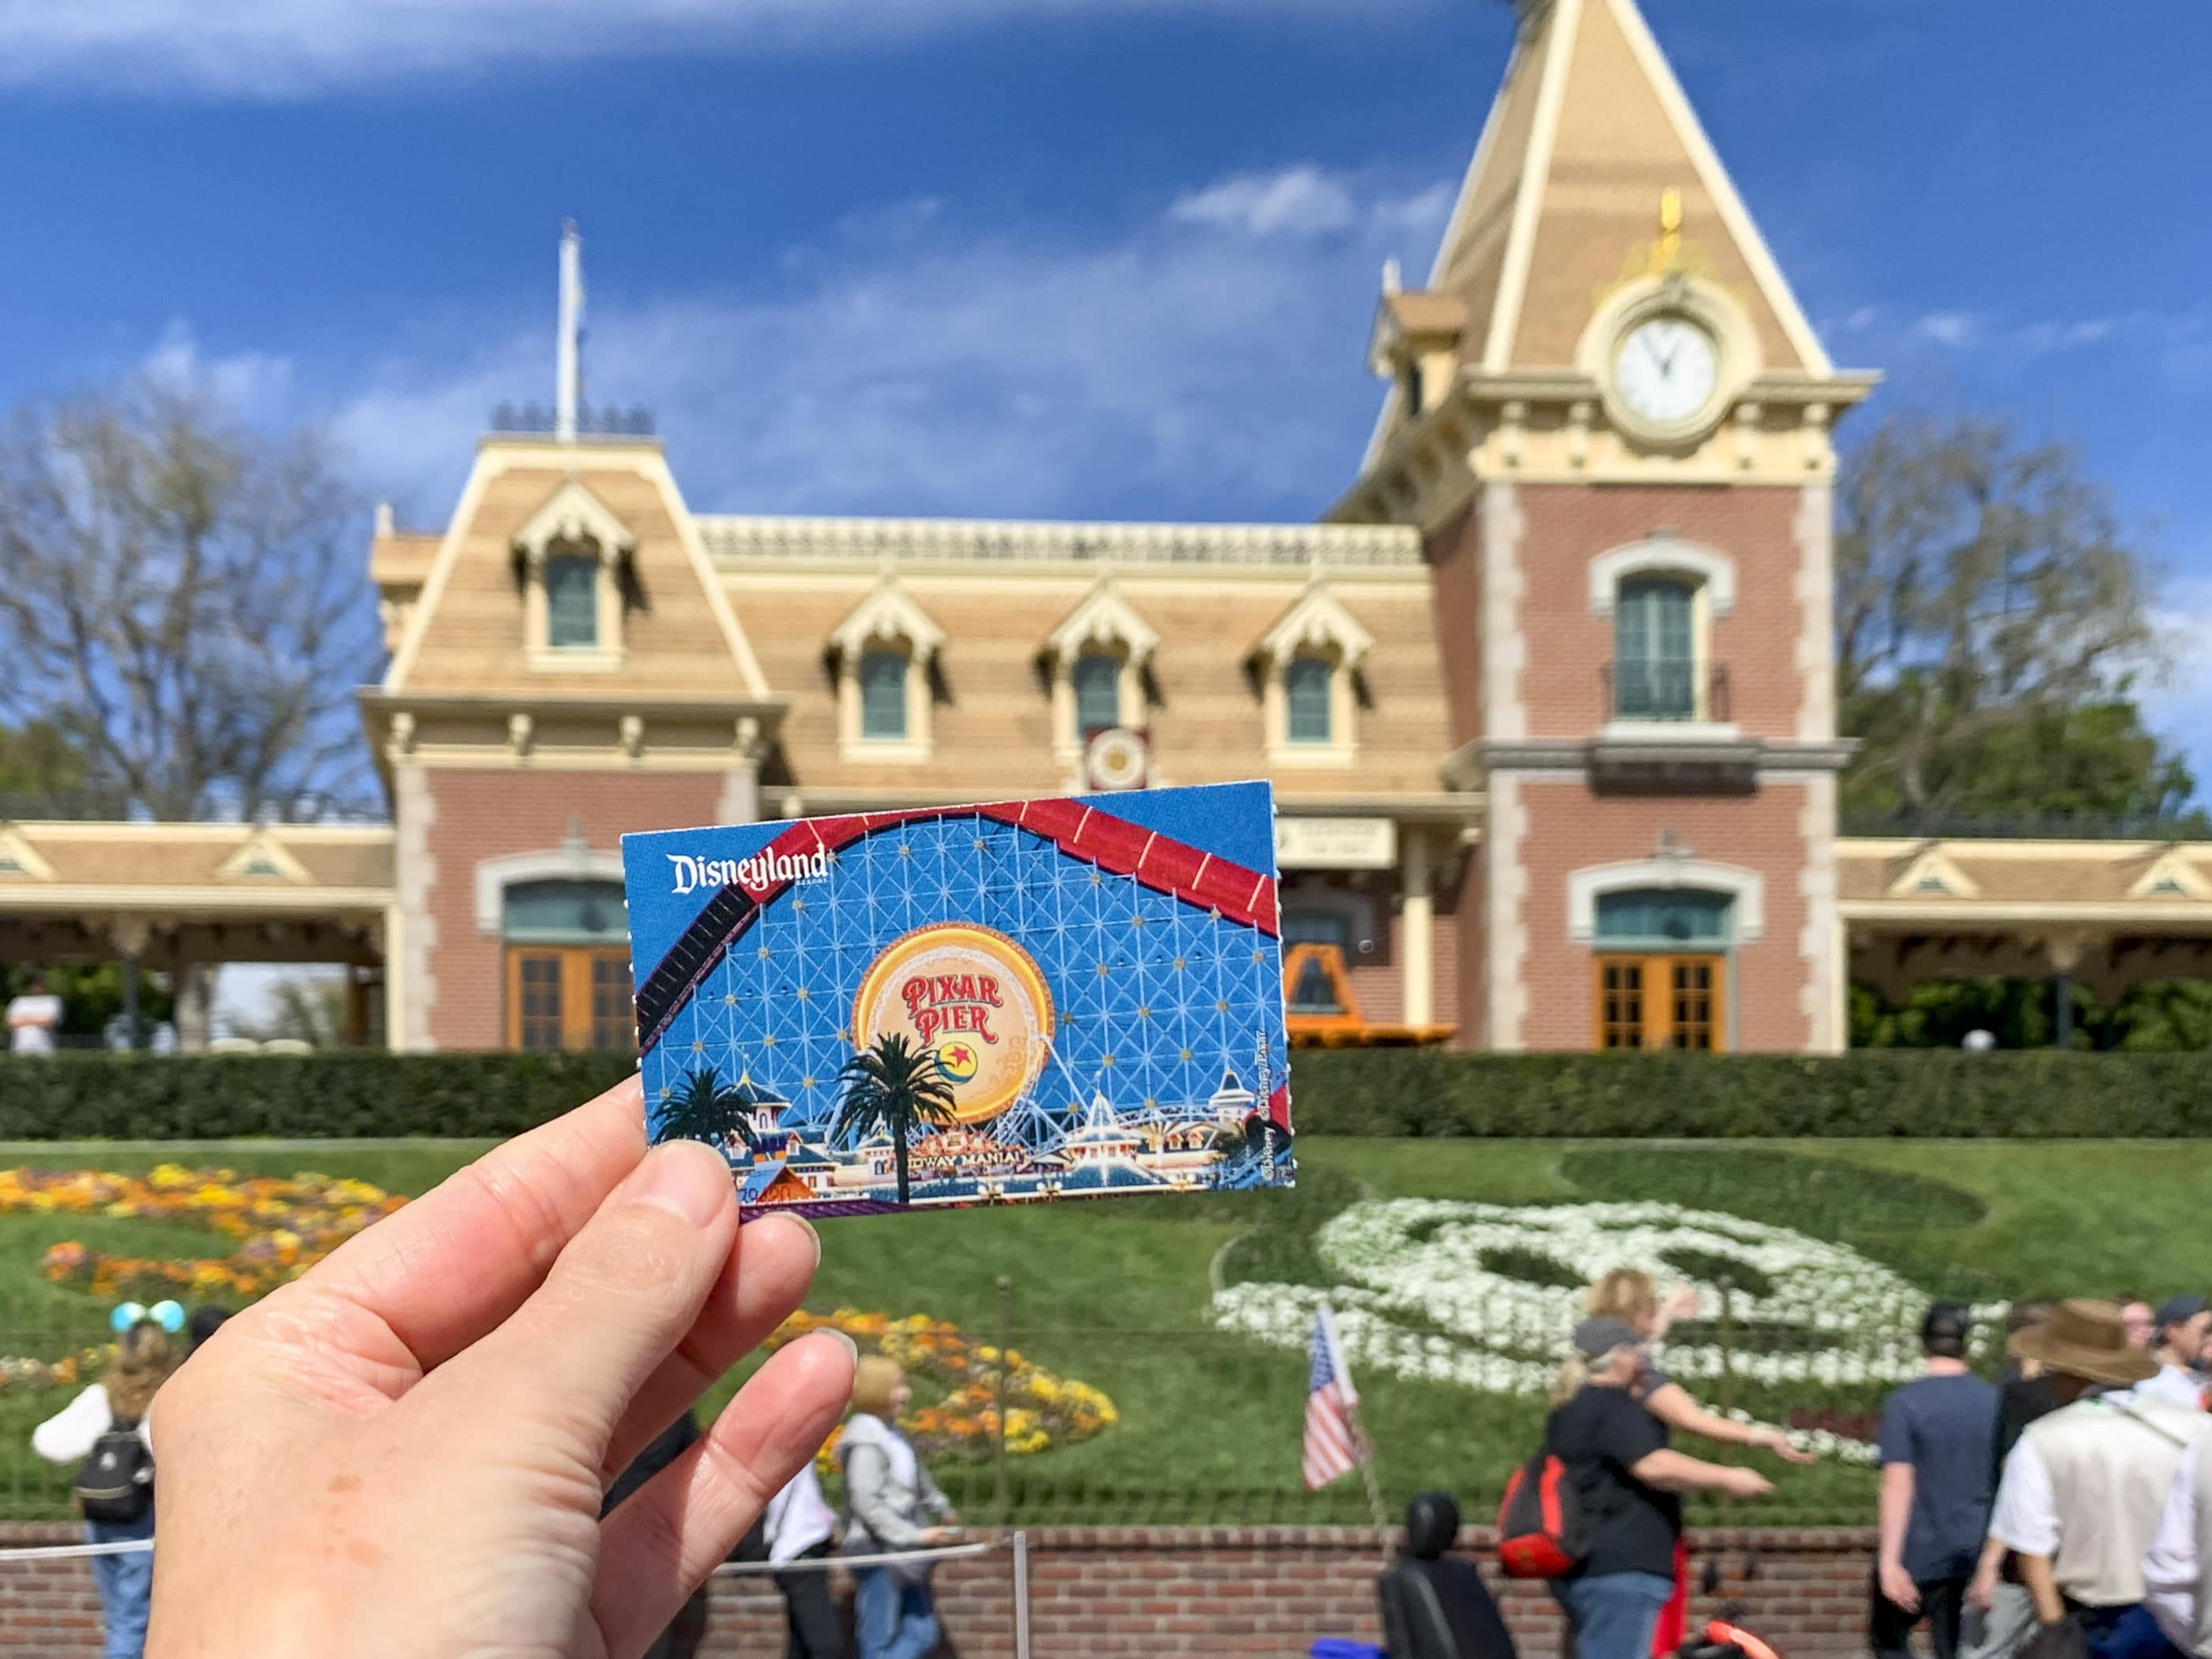 A printed Disney California ticket held up against the Main Street U.S.A. train station facade.